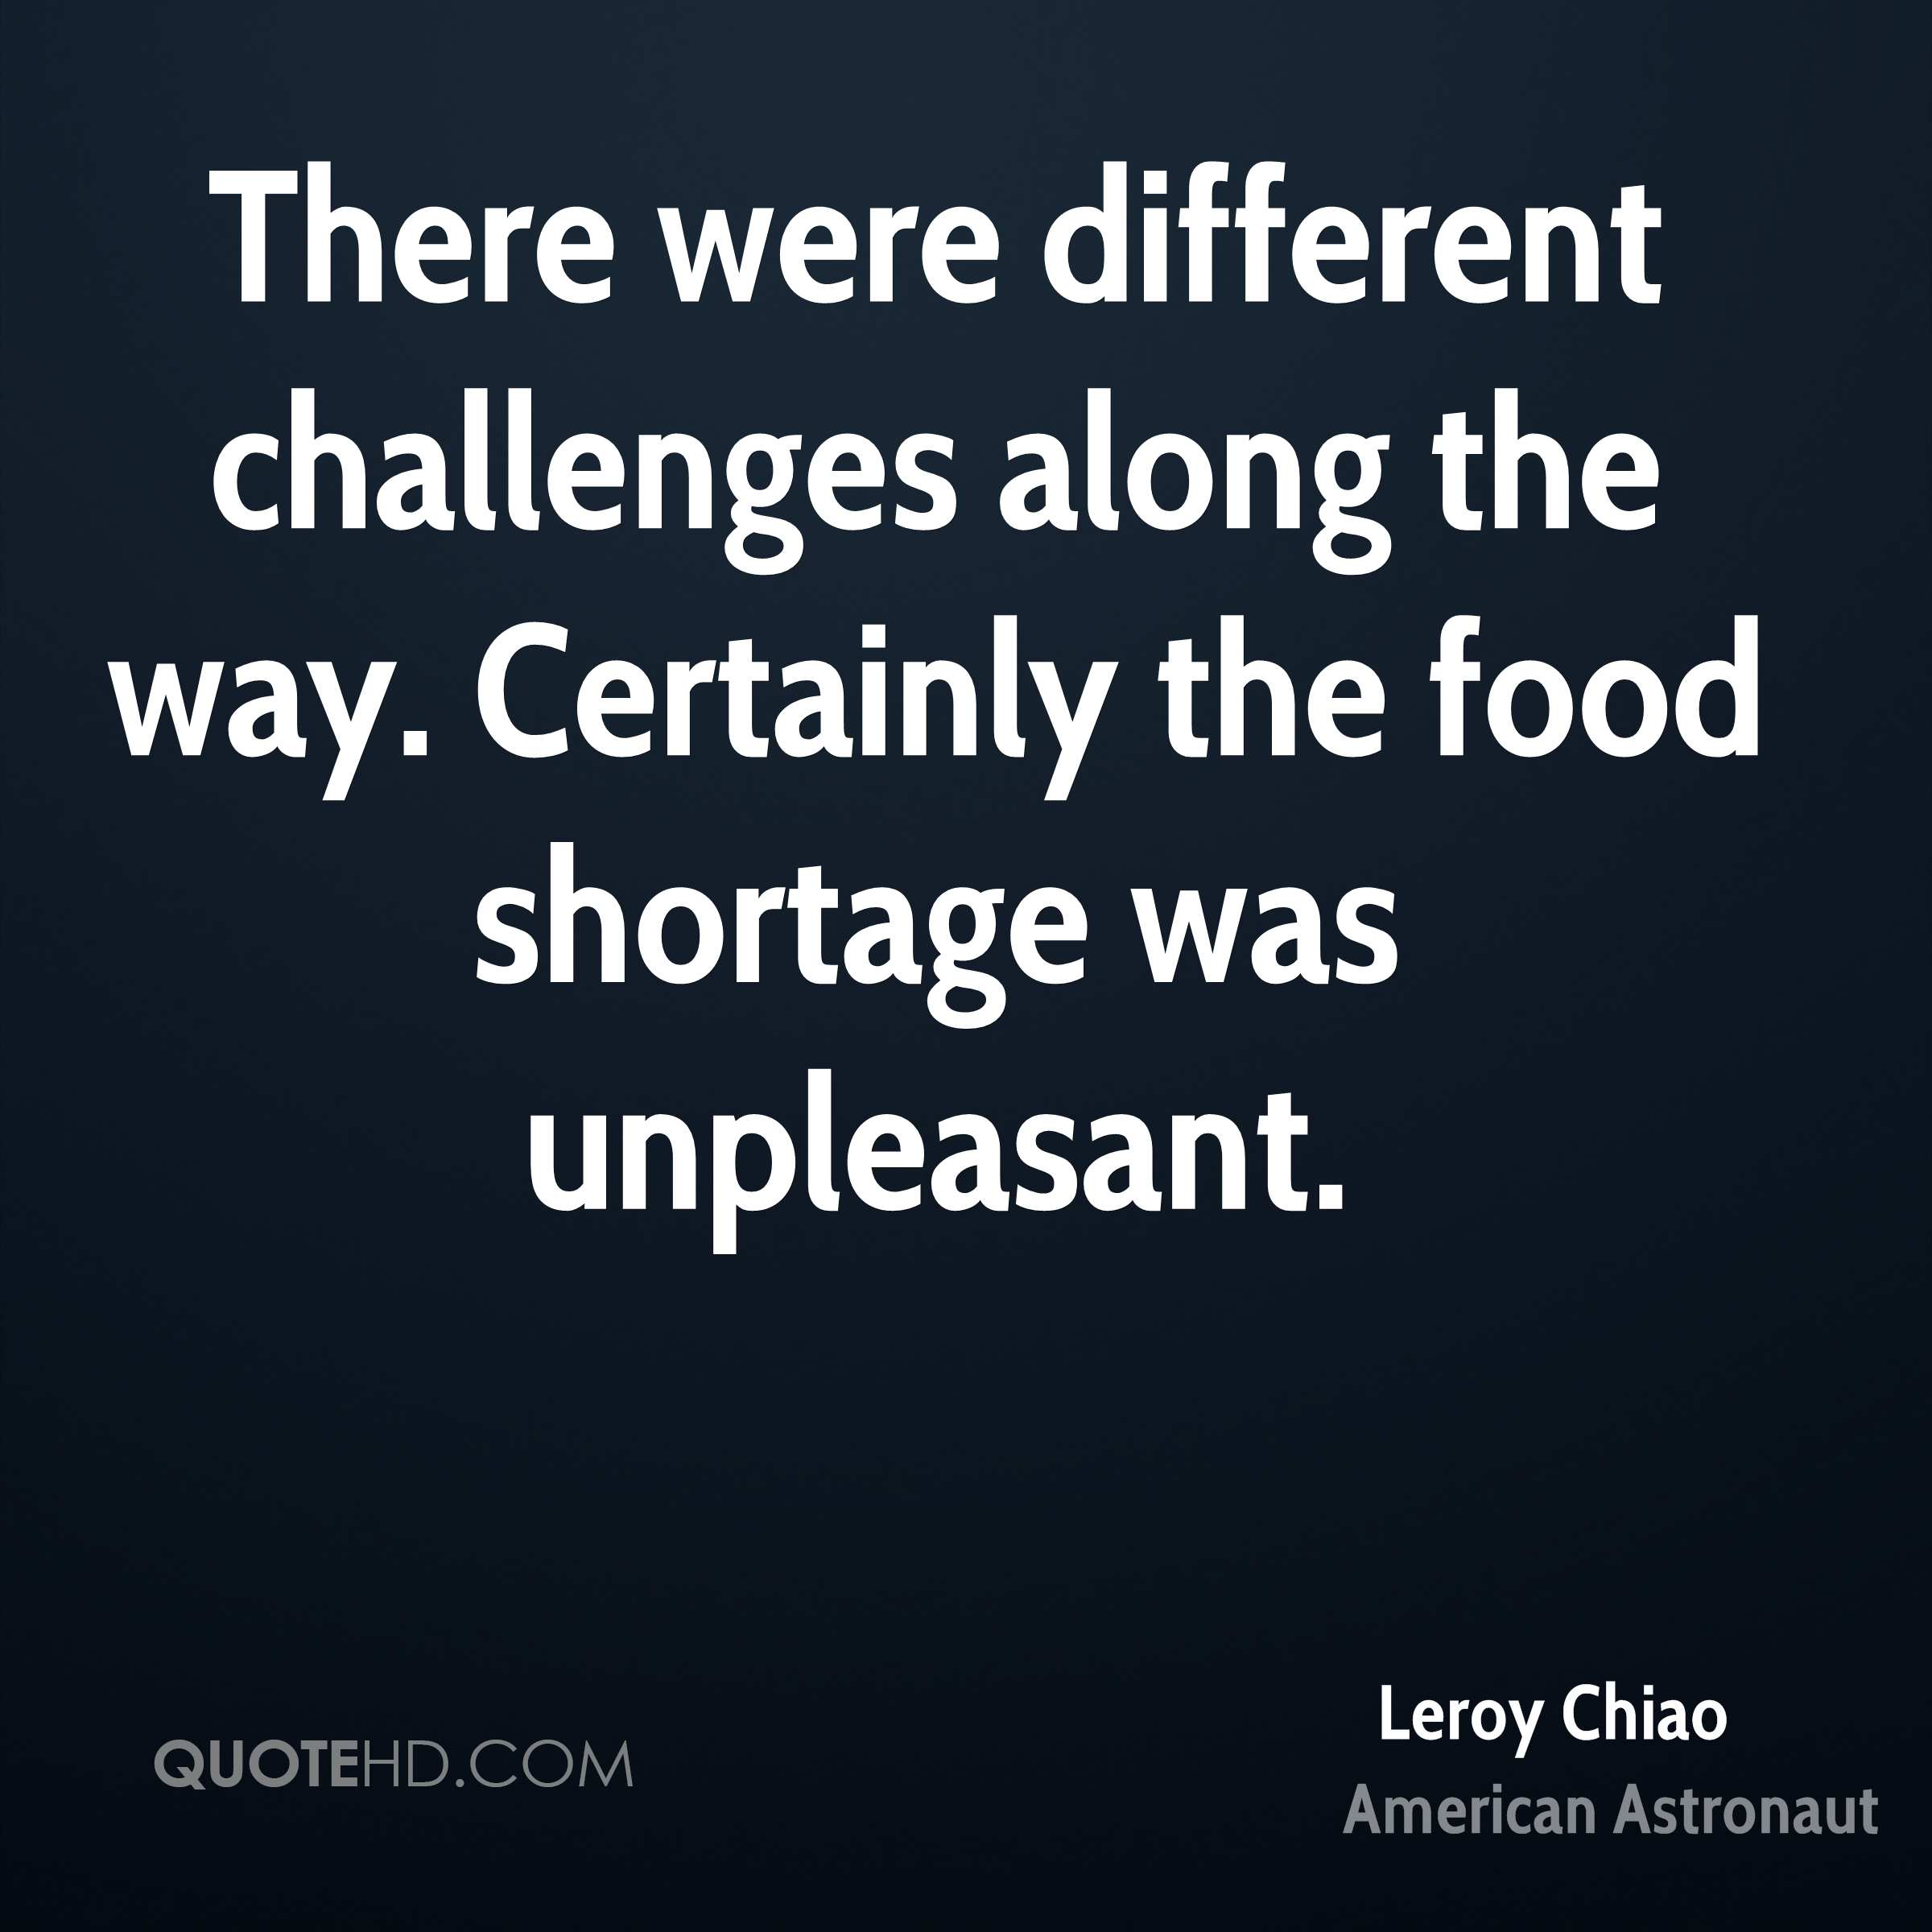 There were different challenges along the way. Certainly the food shortage was unpleasant.